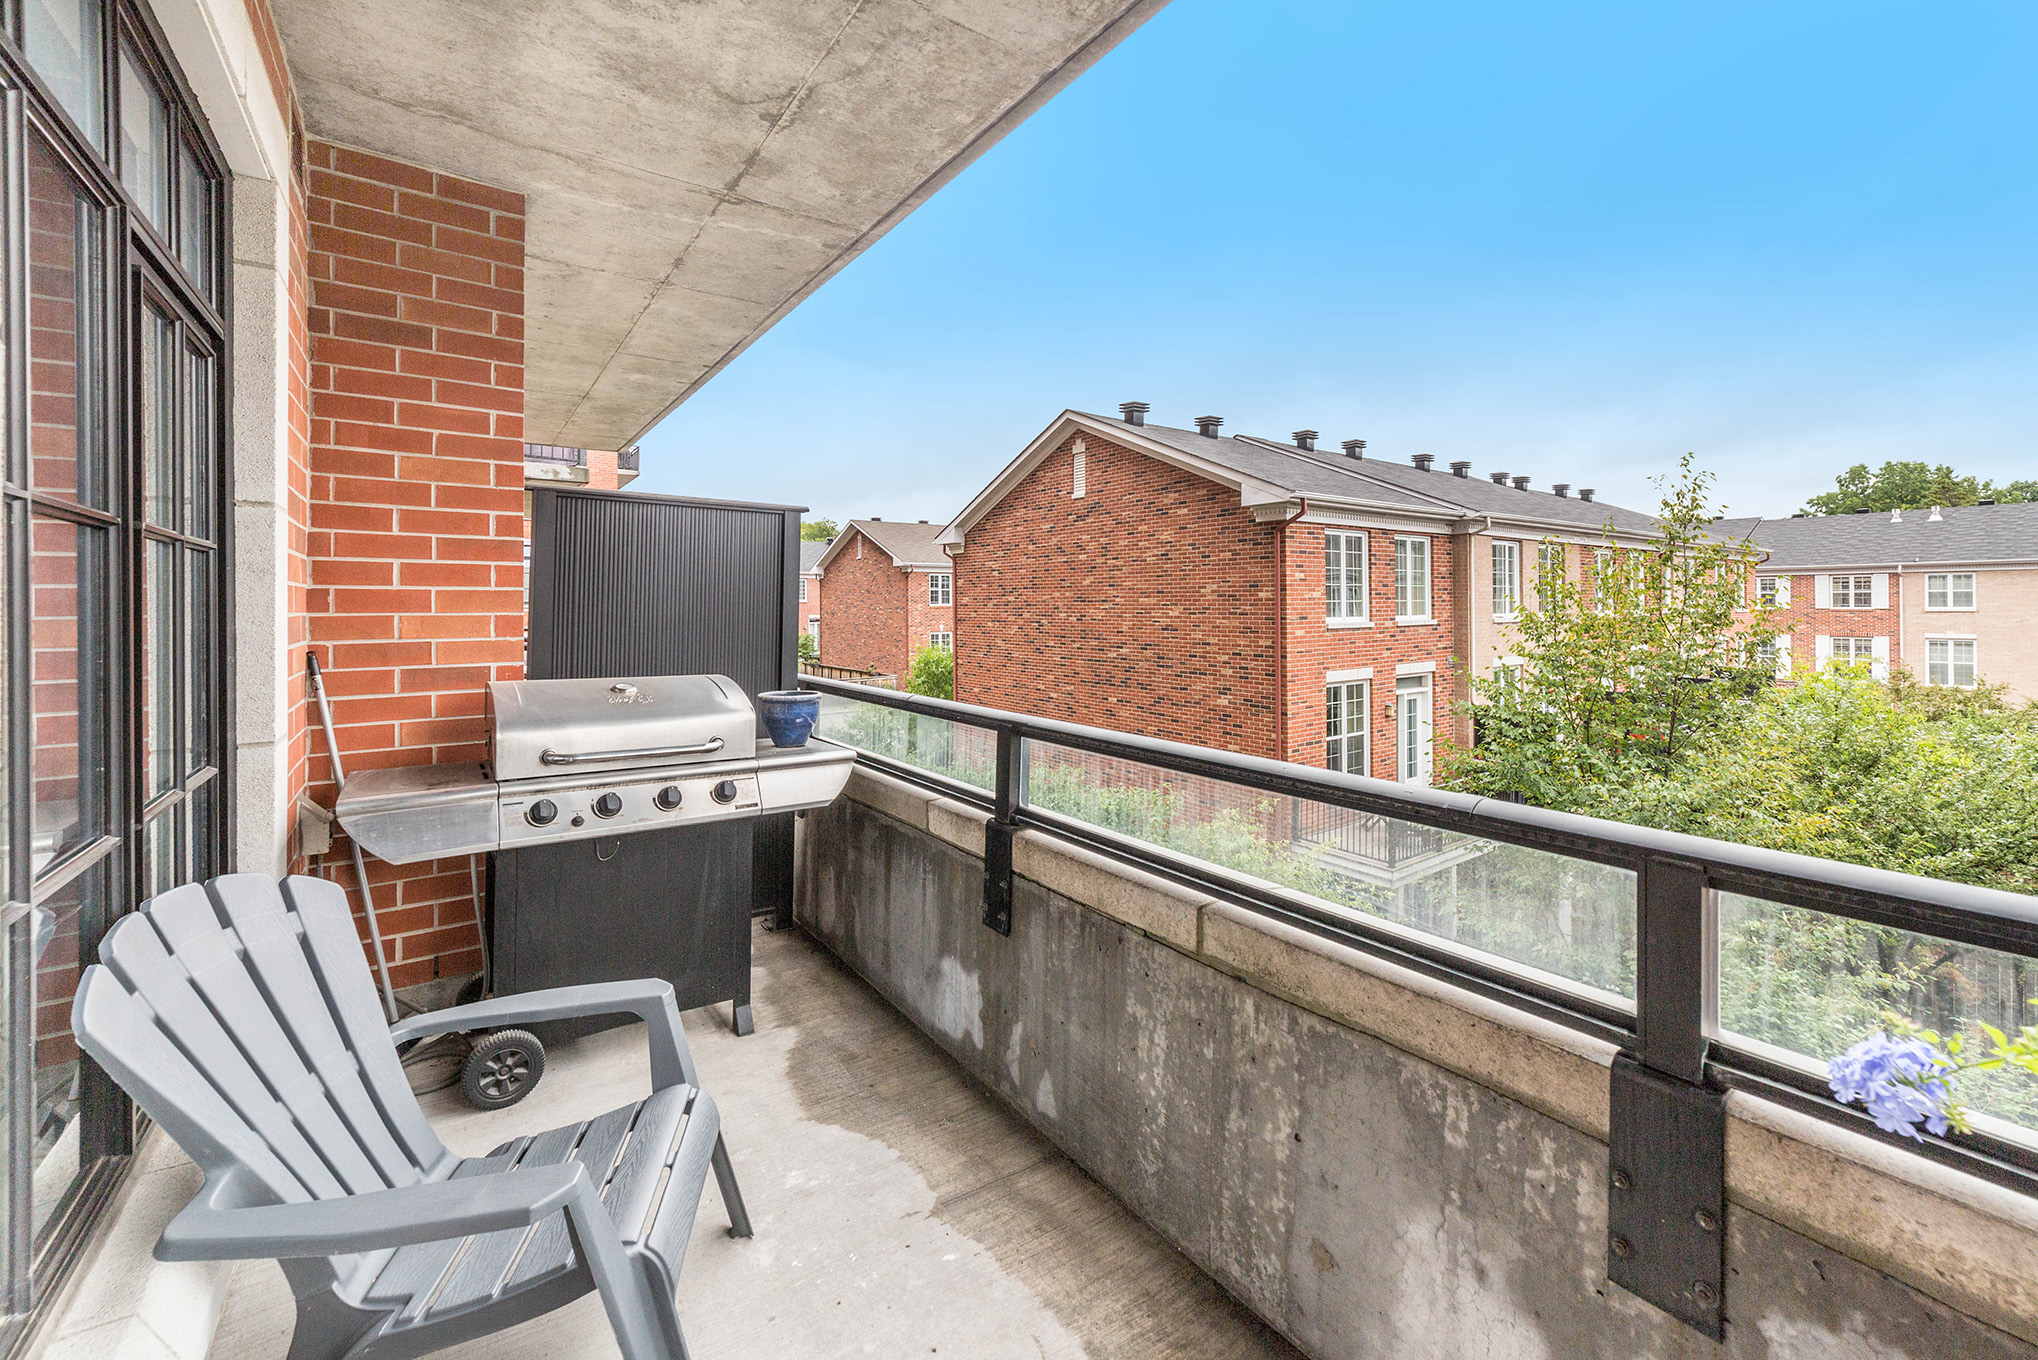 Spacious balcony with a natural gas hookup for BBQ.